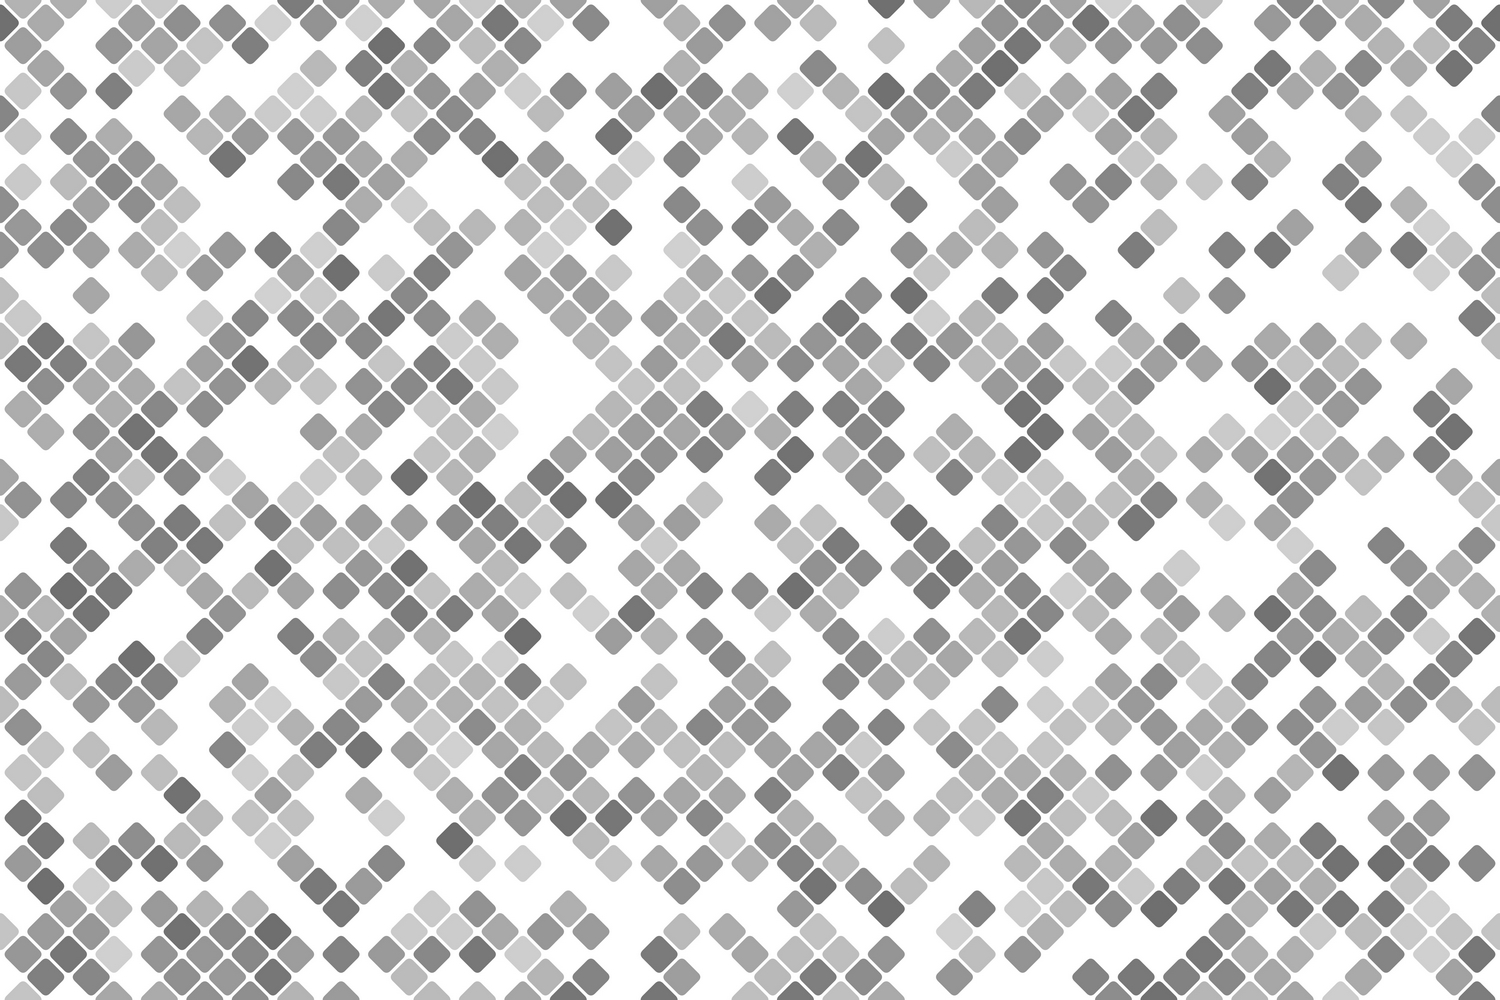 16 Seamless Square Backgrounds AI, EPS, JPG 5000x5000 example image 14